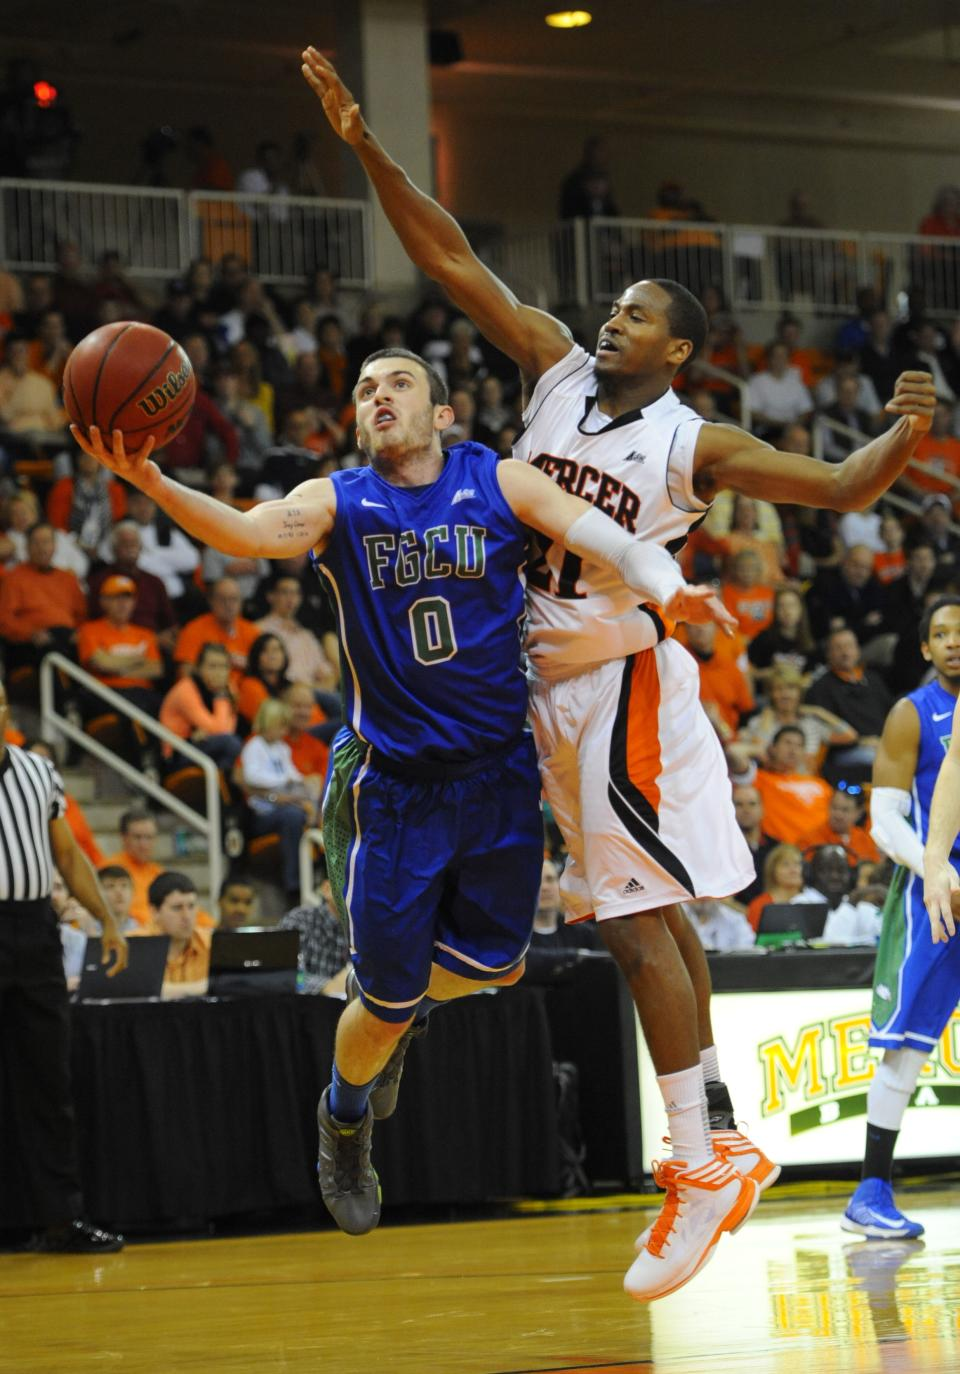 Florida Gulf Coast's Brett Comer (0) works against Mercer's Langston Hall (21) during the first half of the Atlantic Sun championship game in Macon, Ga., Saturday, March 9, 2013.  (AP Photo/Woody Marshall)